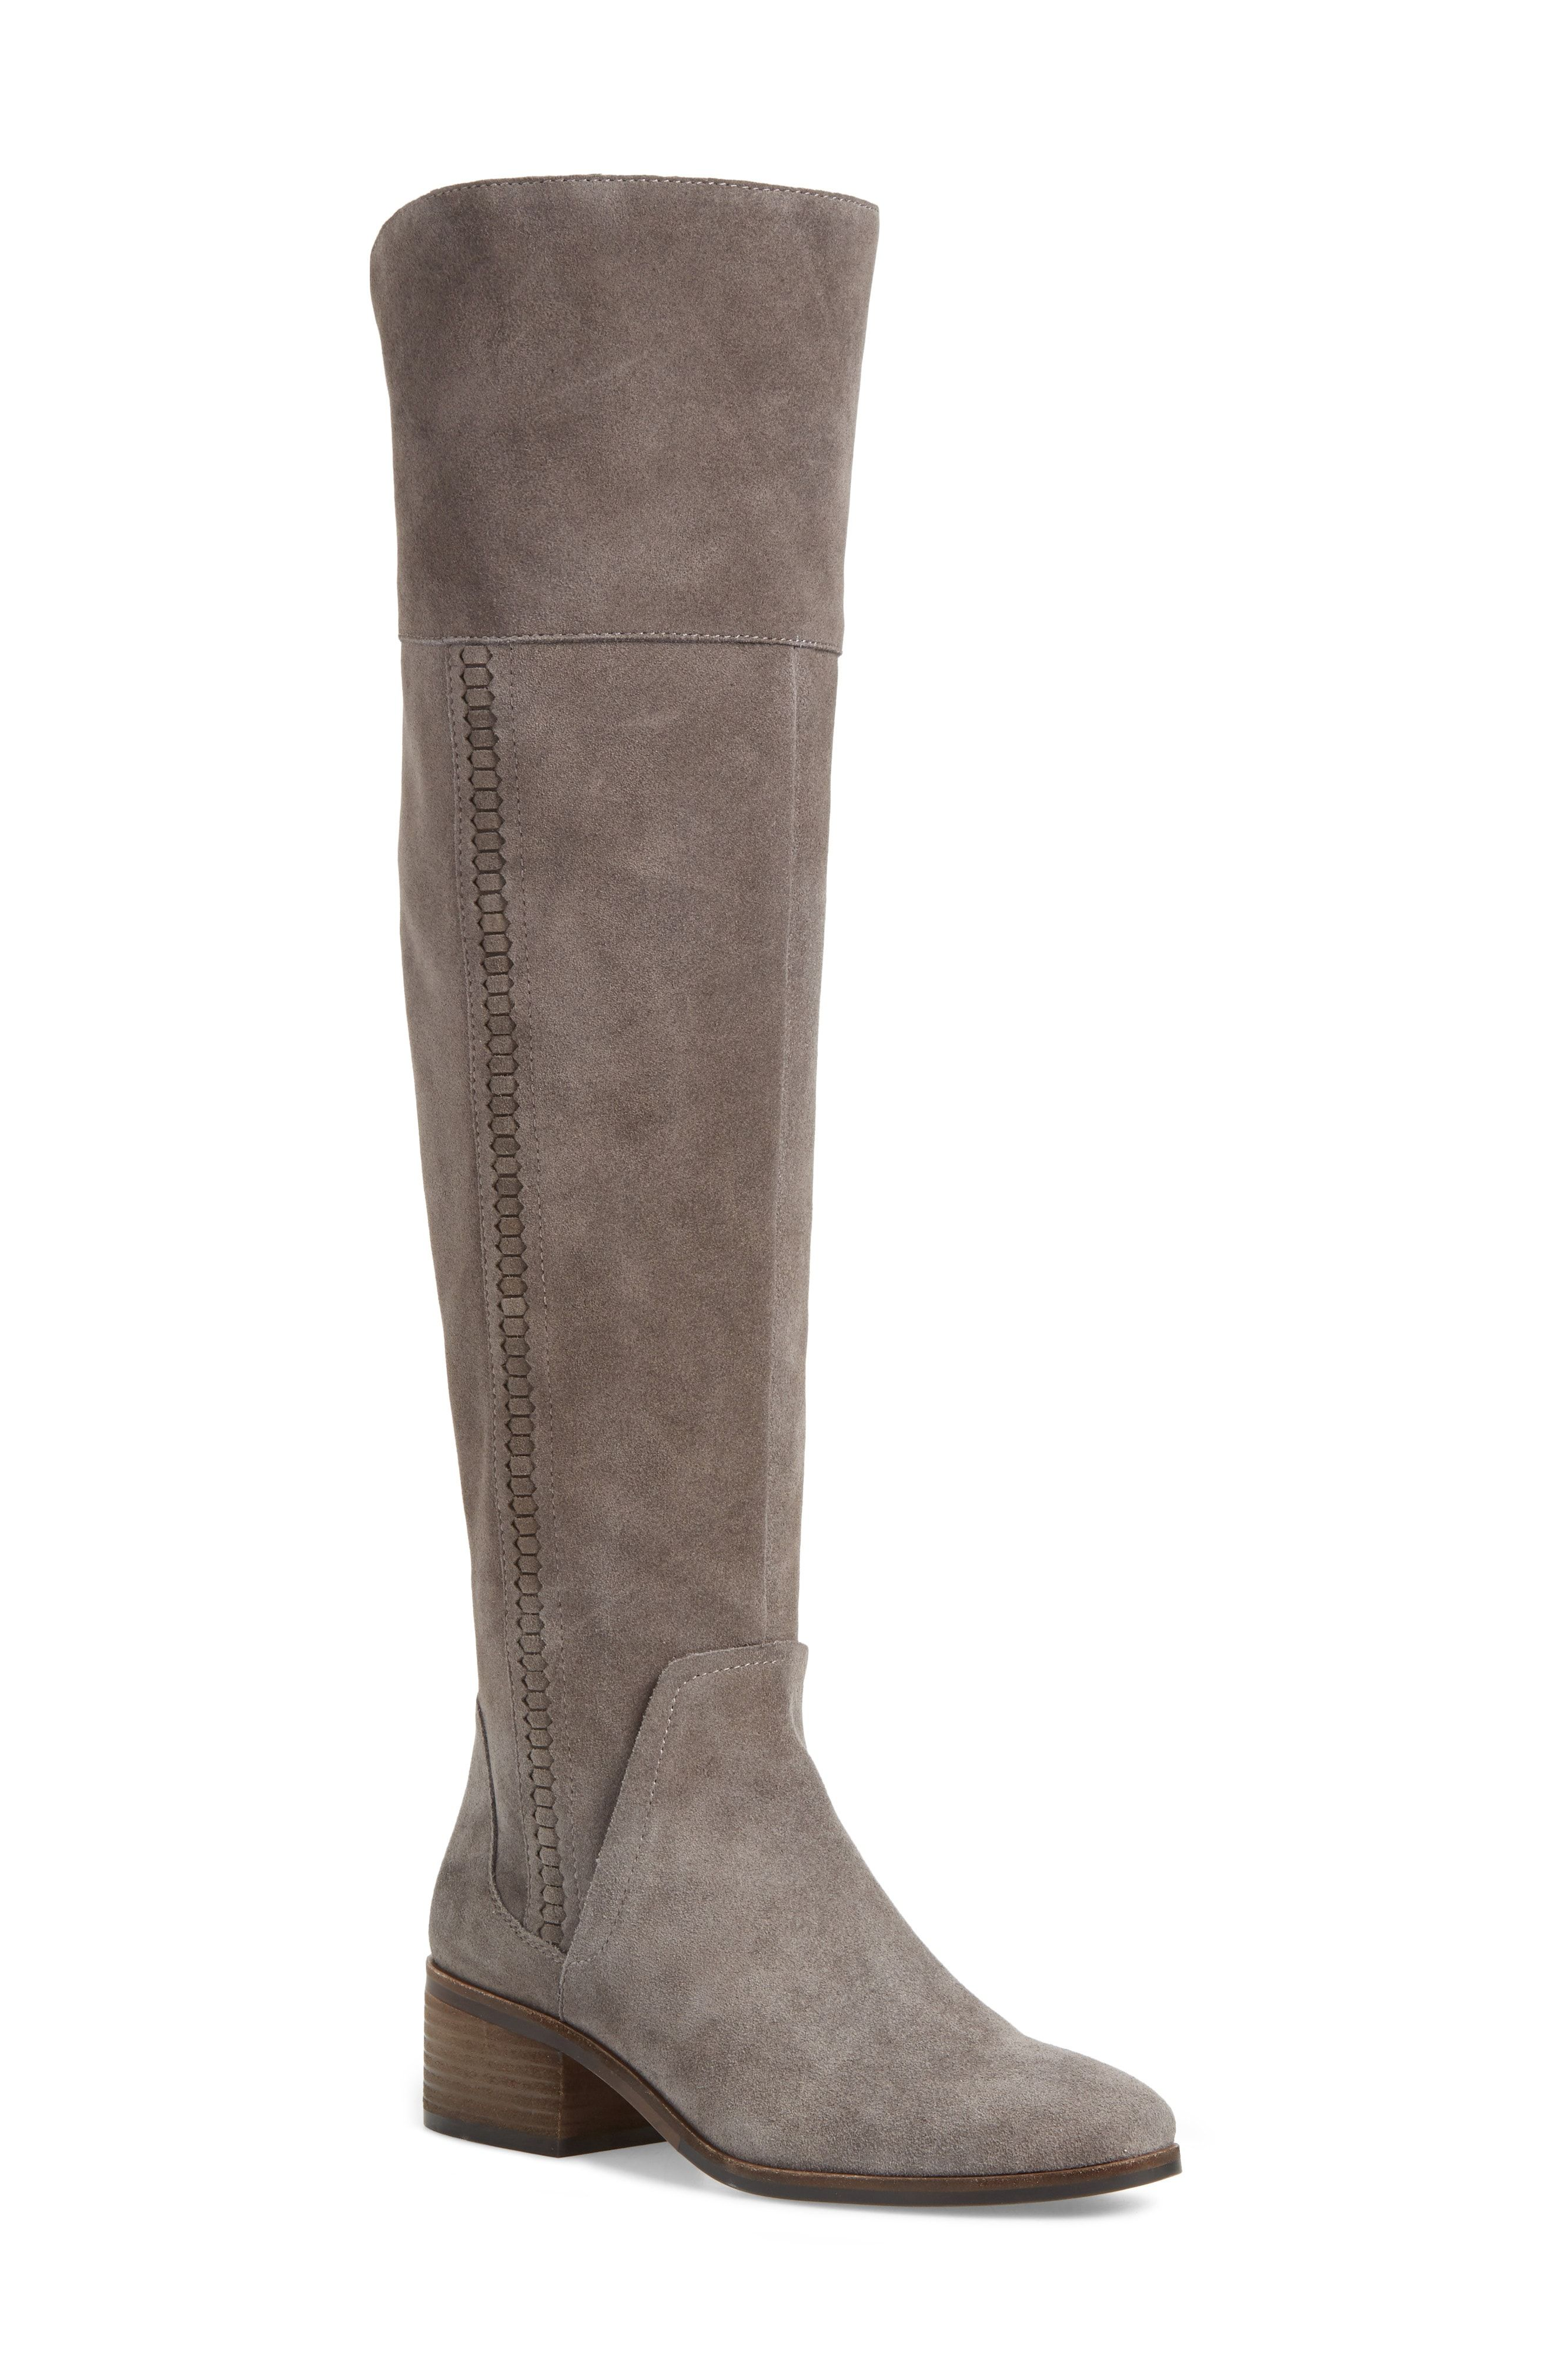 8cf72a44f2c Our Favorite Fall Boots Booties   Shoes - SheShe Show